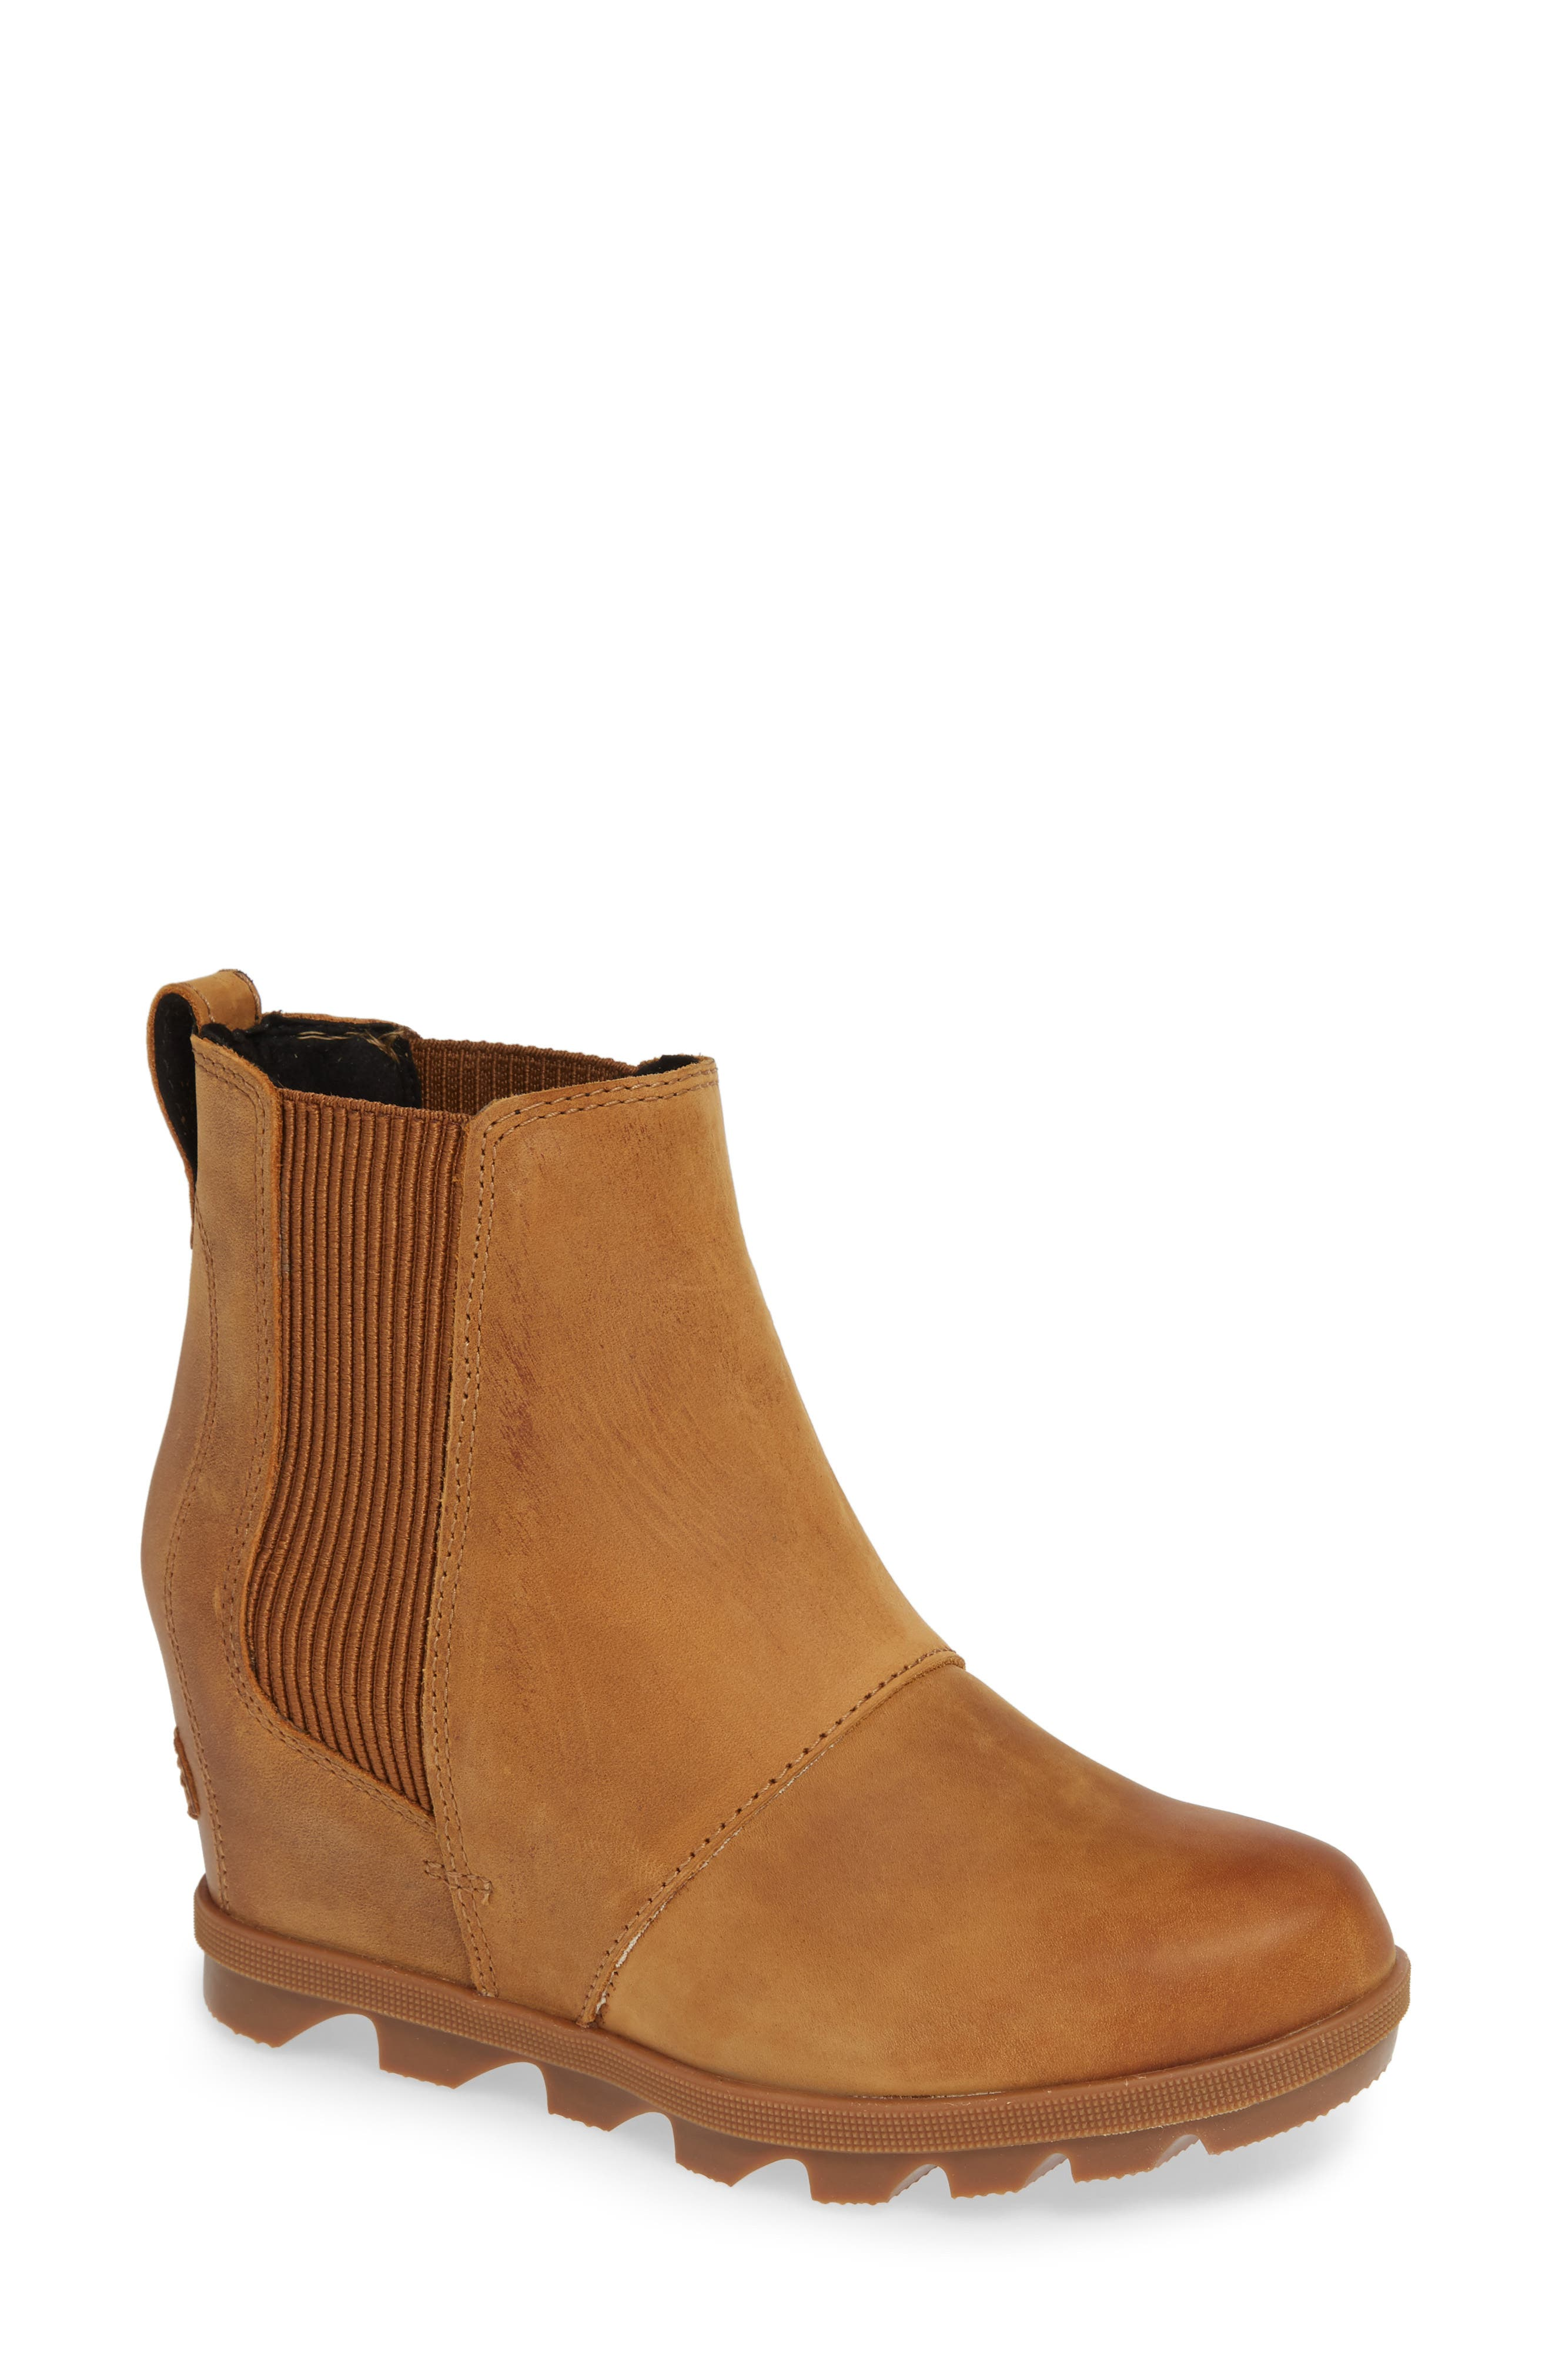 Sorel Joan Of Arctic Ii Waterproof Wedge Bootie- Brown